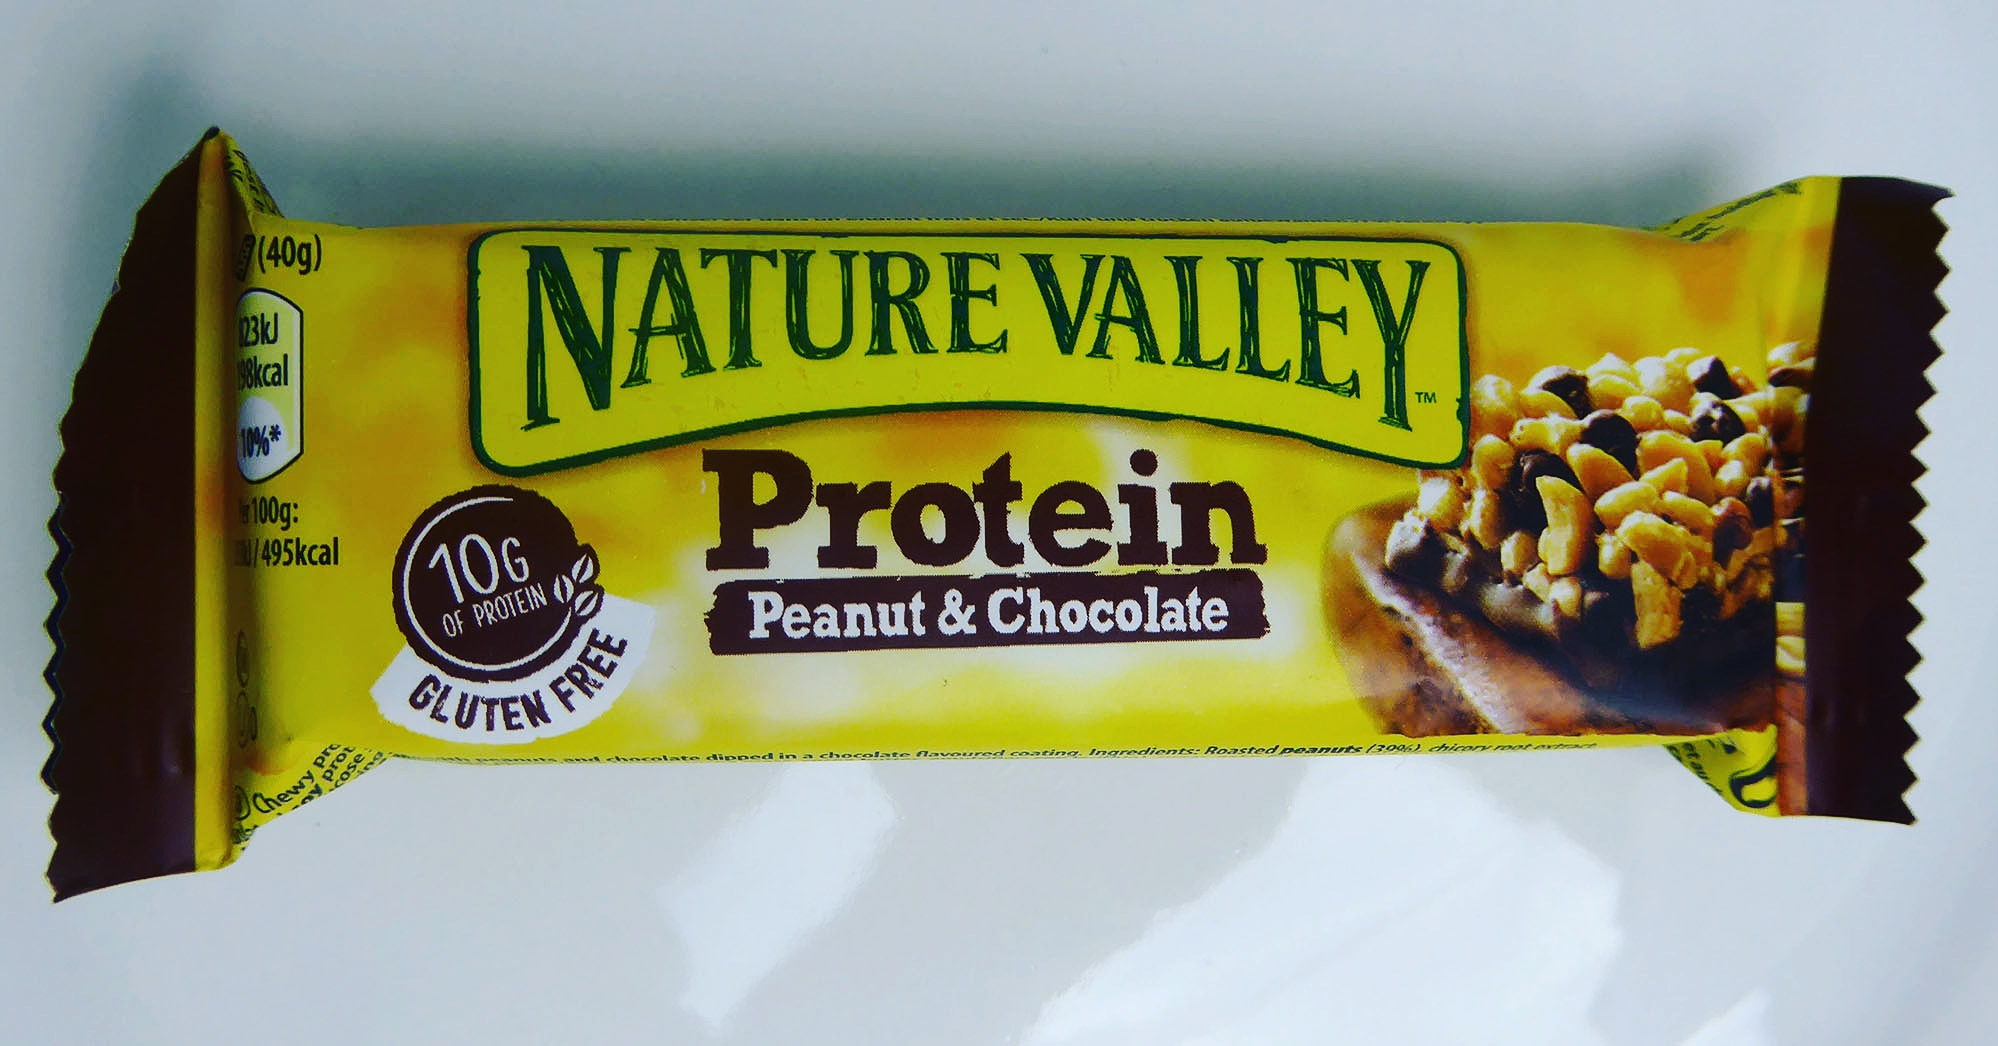 Nature Valley Protein Bar Peanut Chocolate Erdnuss Schokolade Proteinriegel